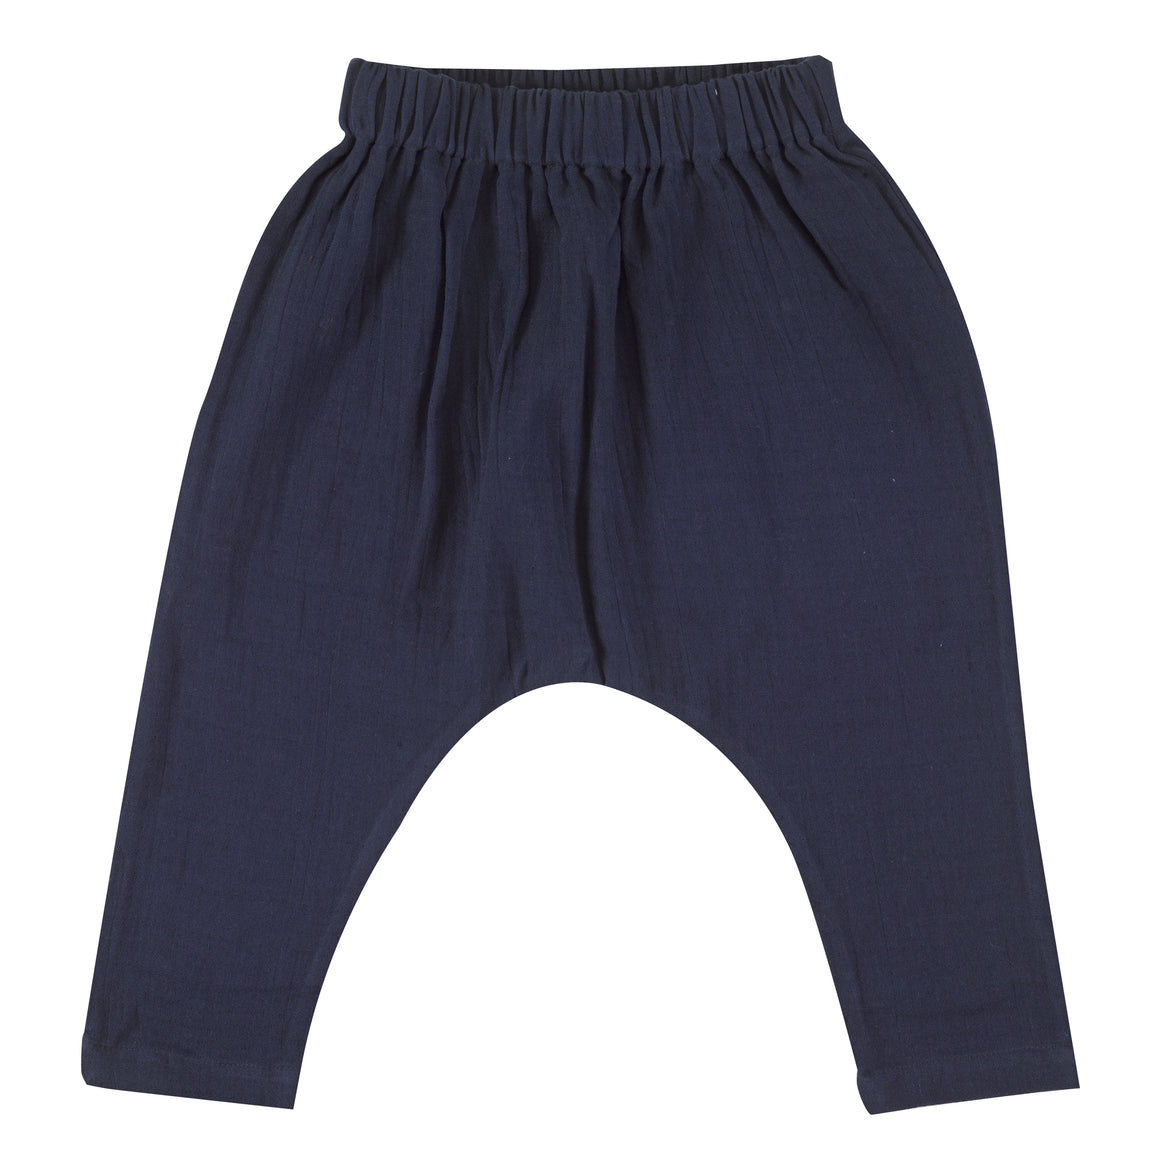 Muslin baggy pants in navy